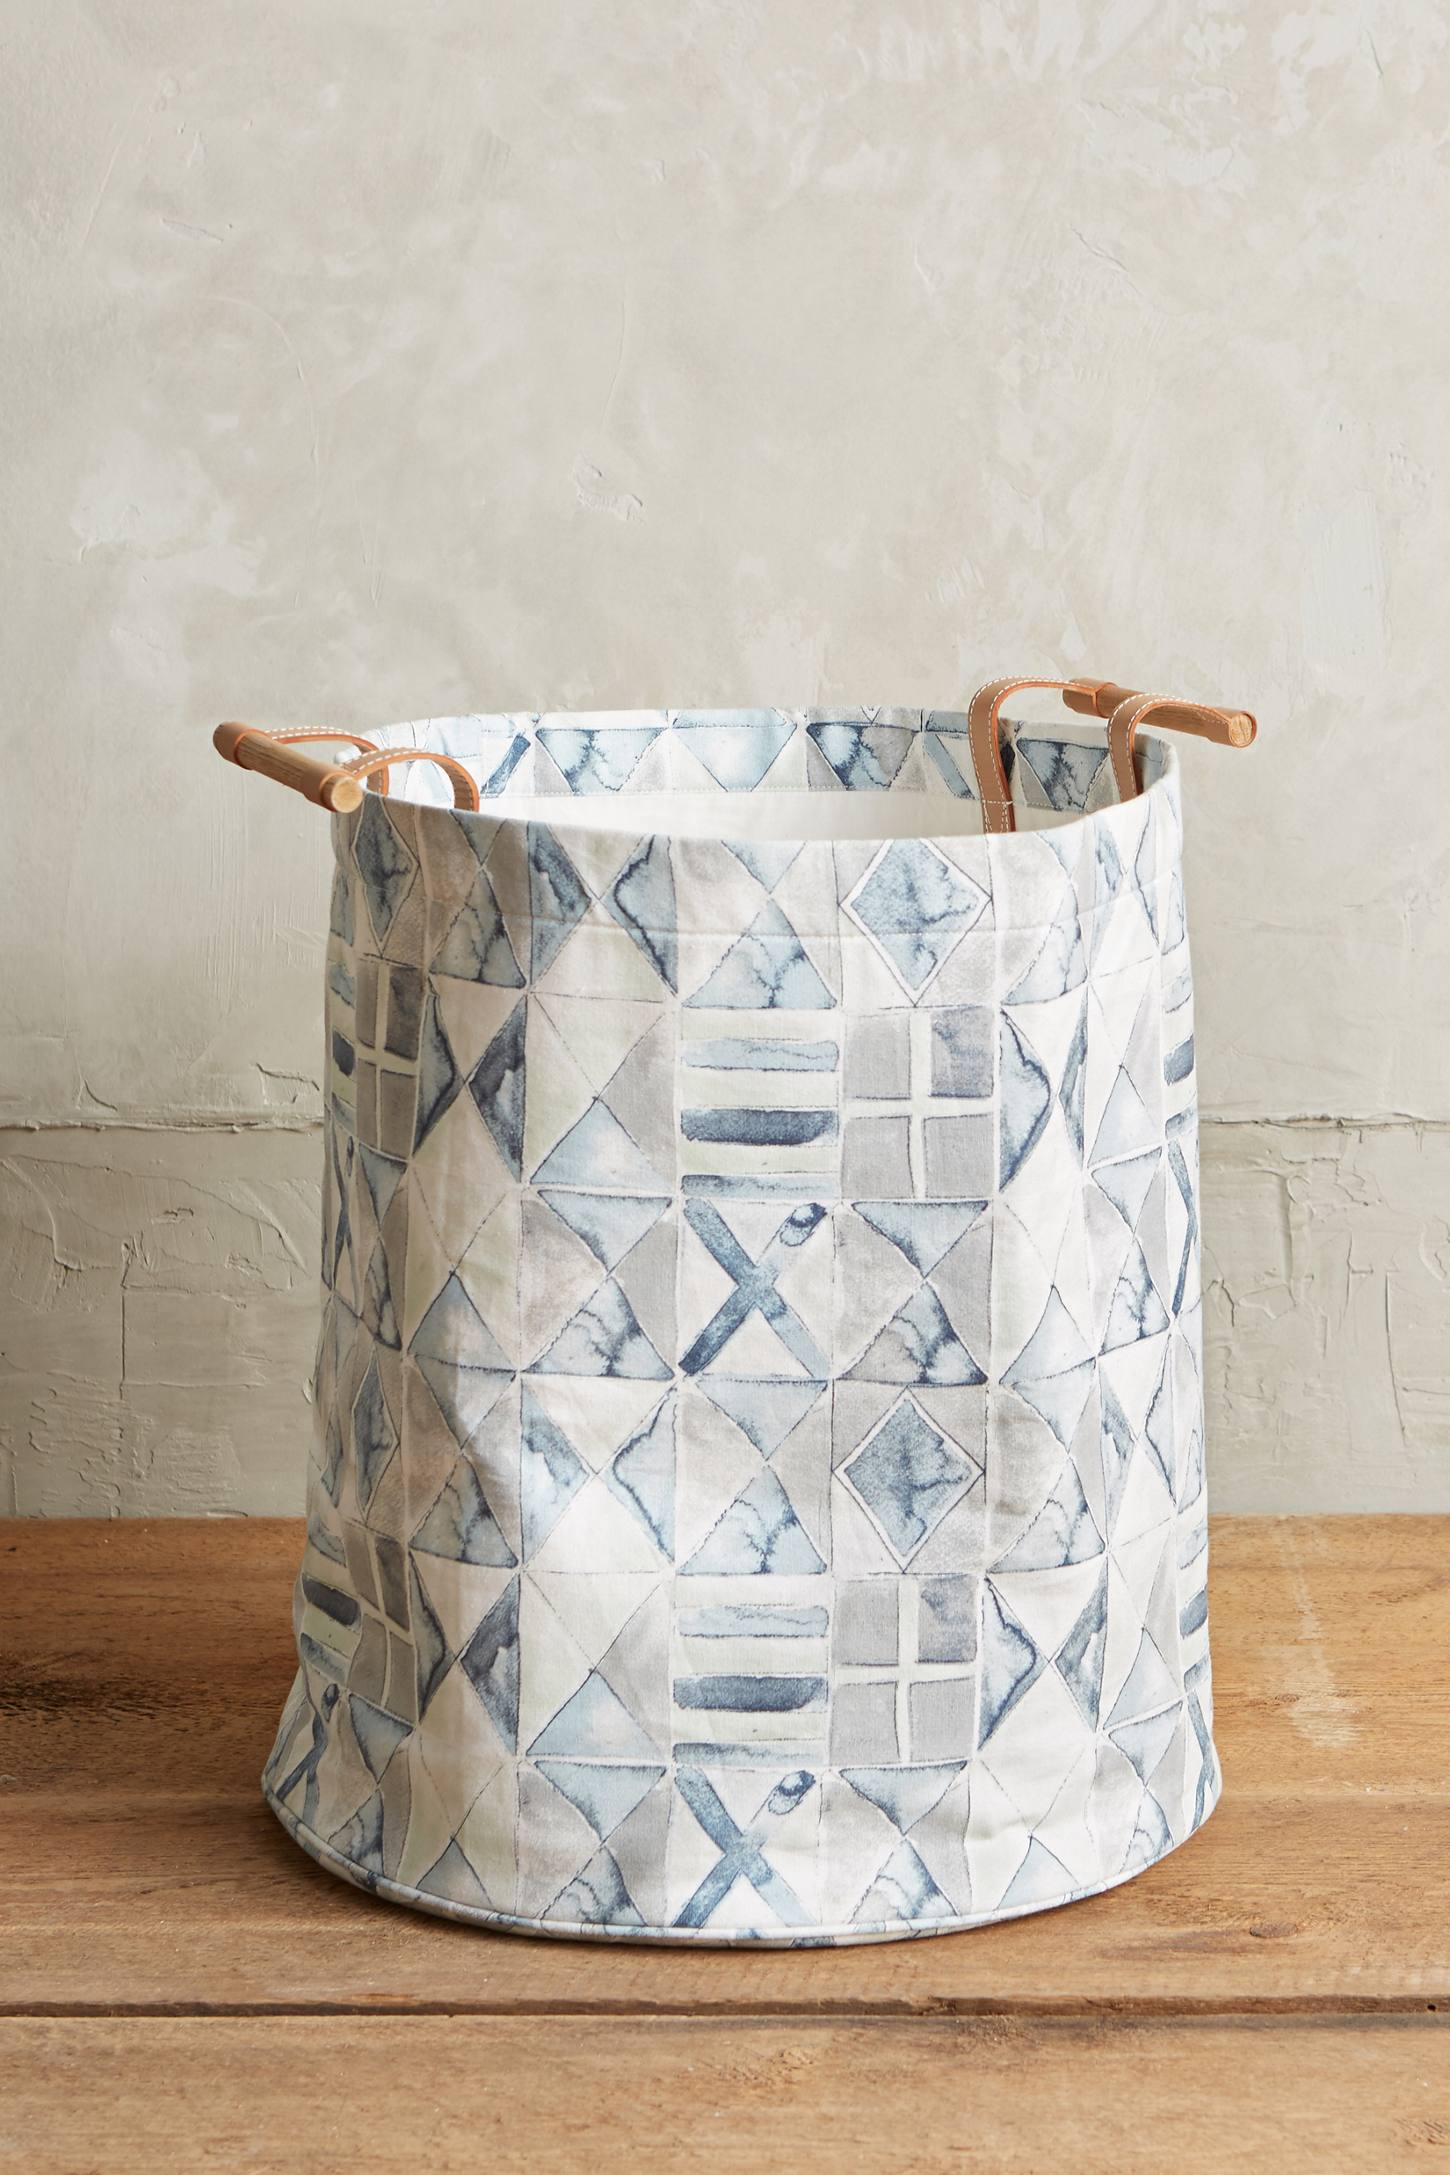 Laundry hamper from Anthropologie